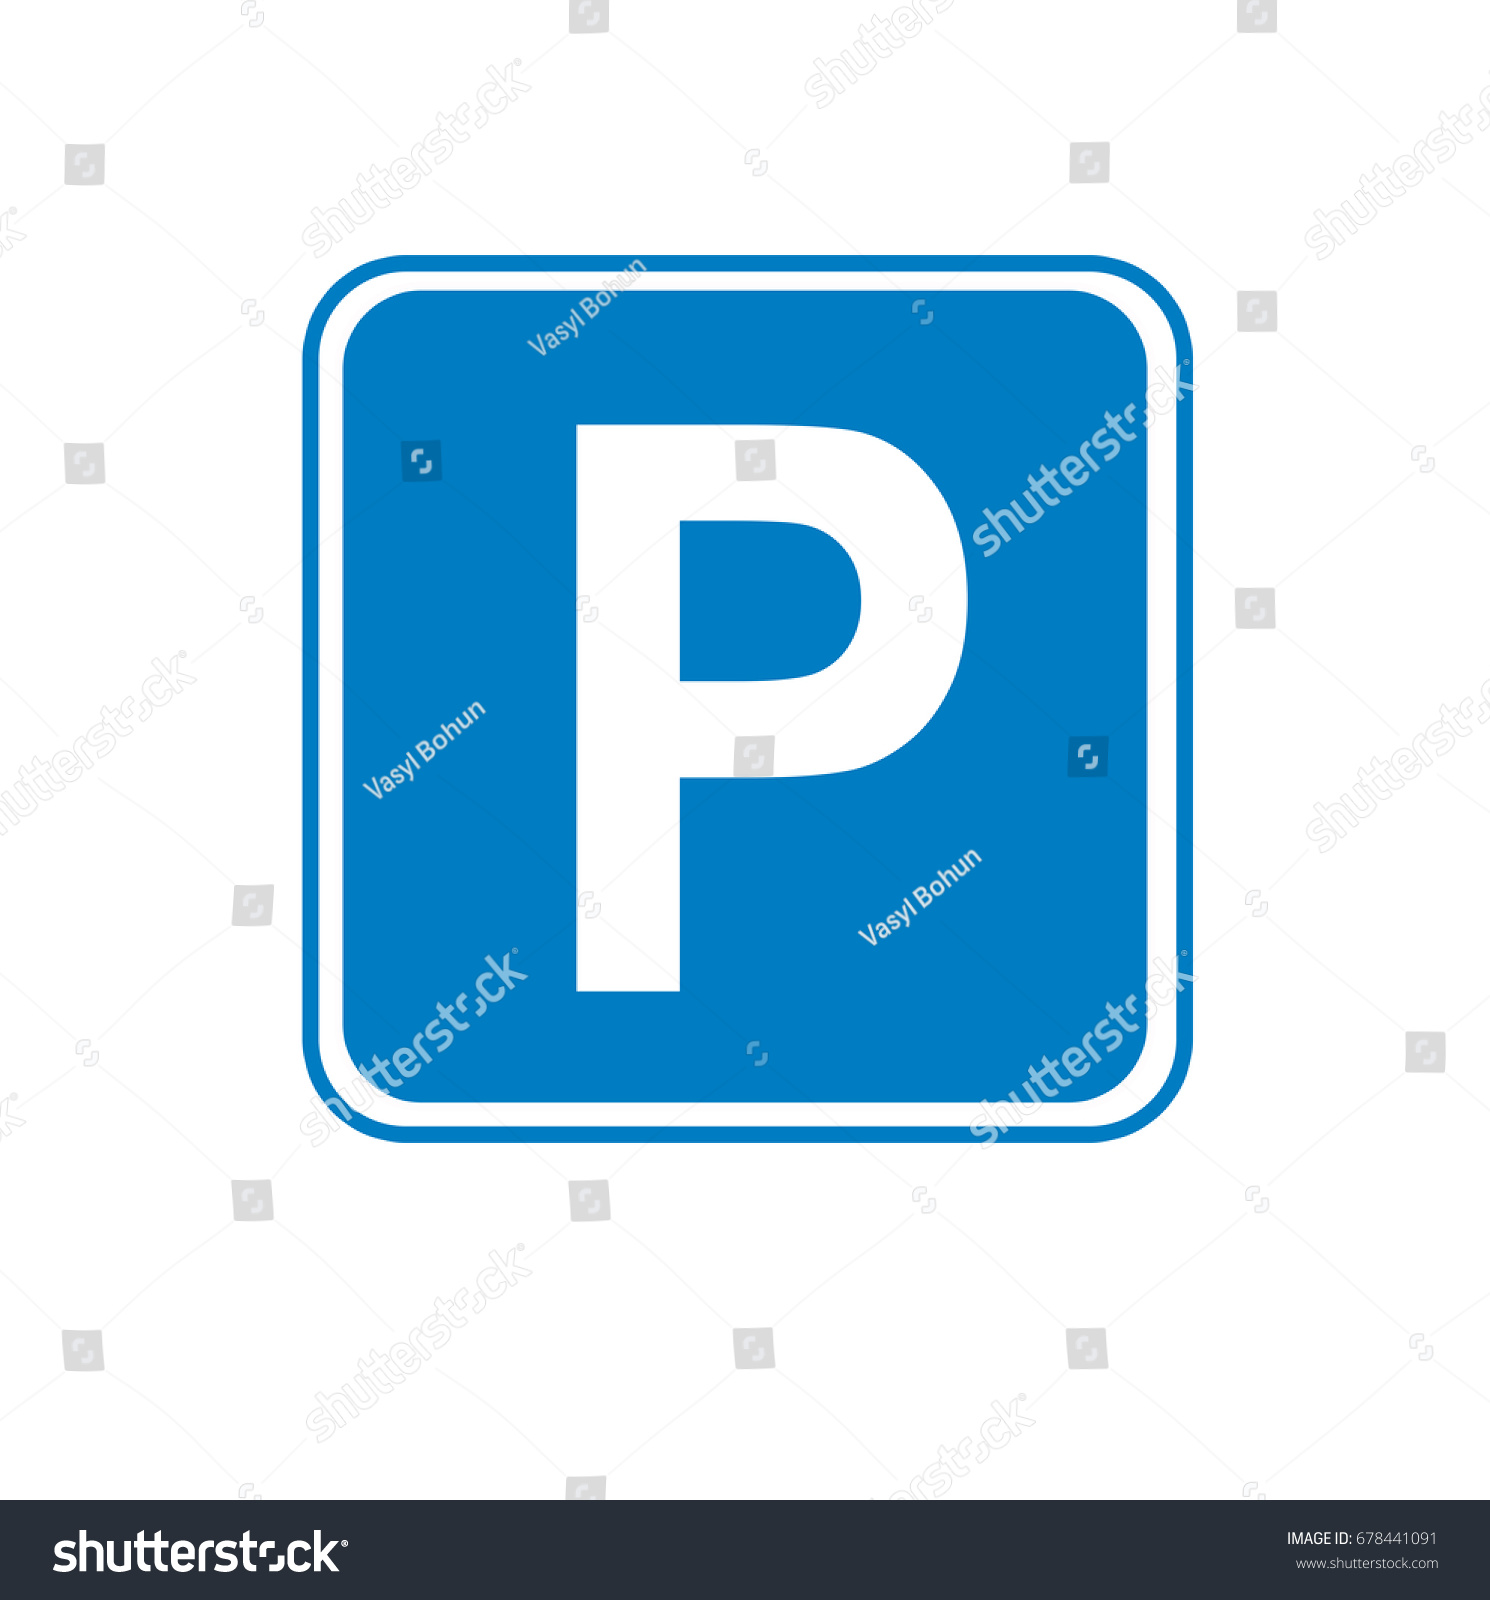 Symbol traffic parking on road parking stock illustration symbol of traffic parking on the road and parking area buycottarizona